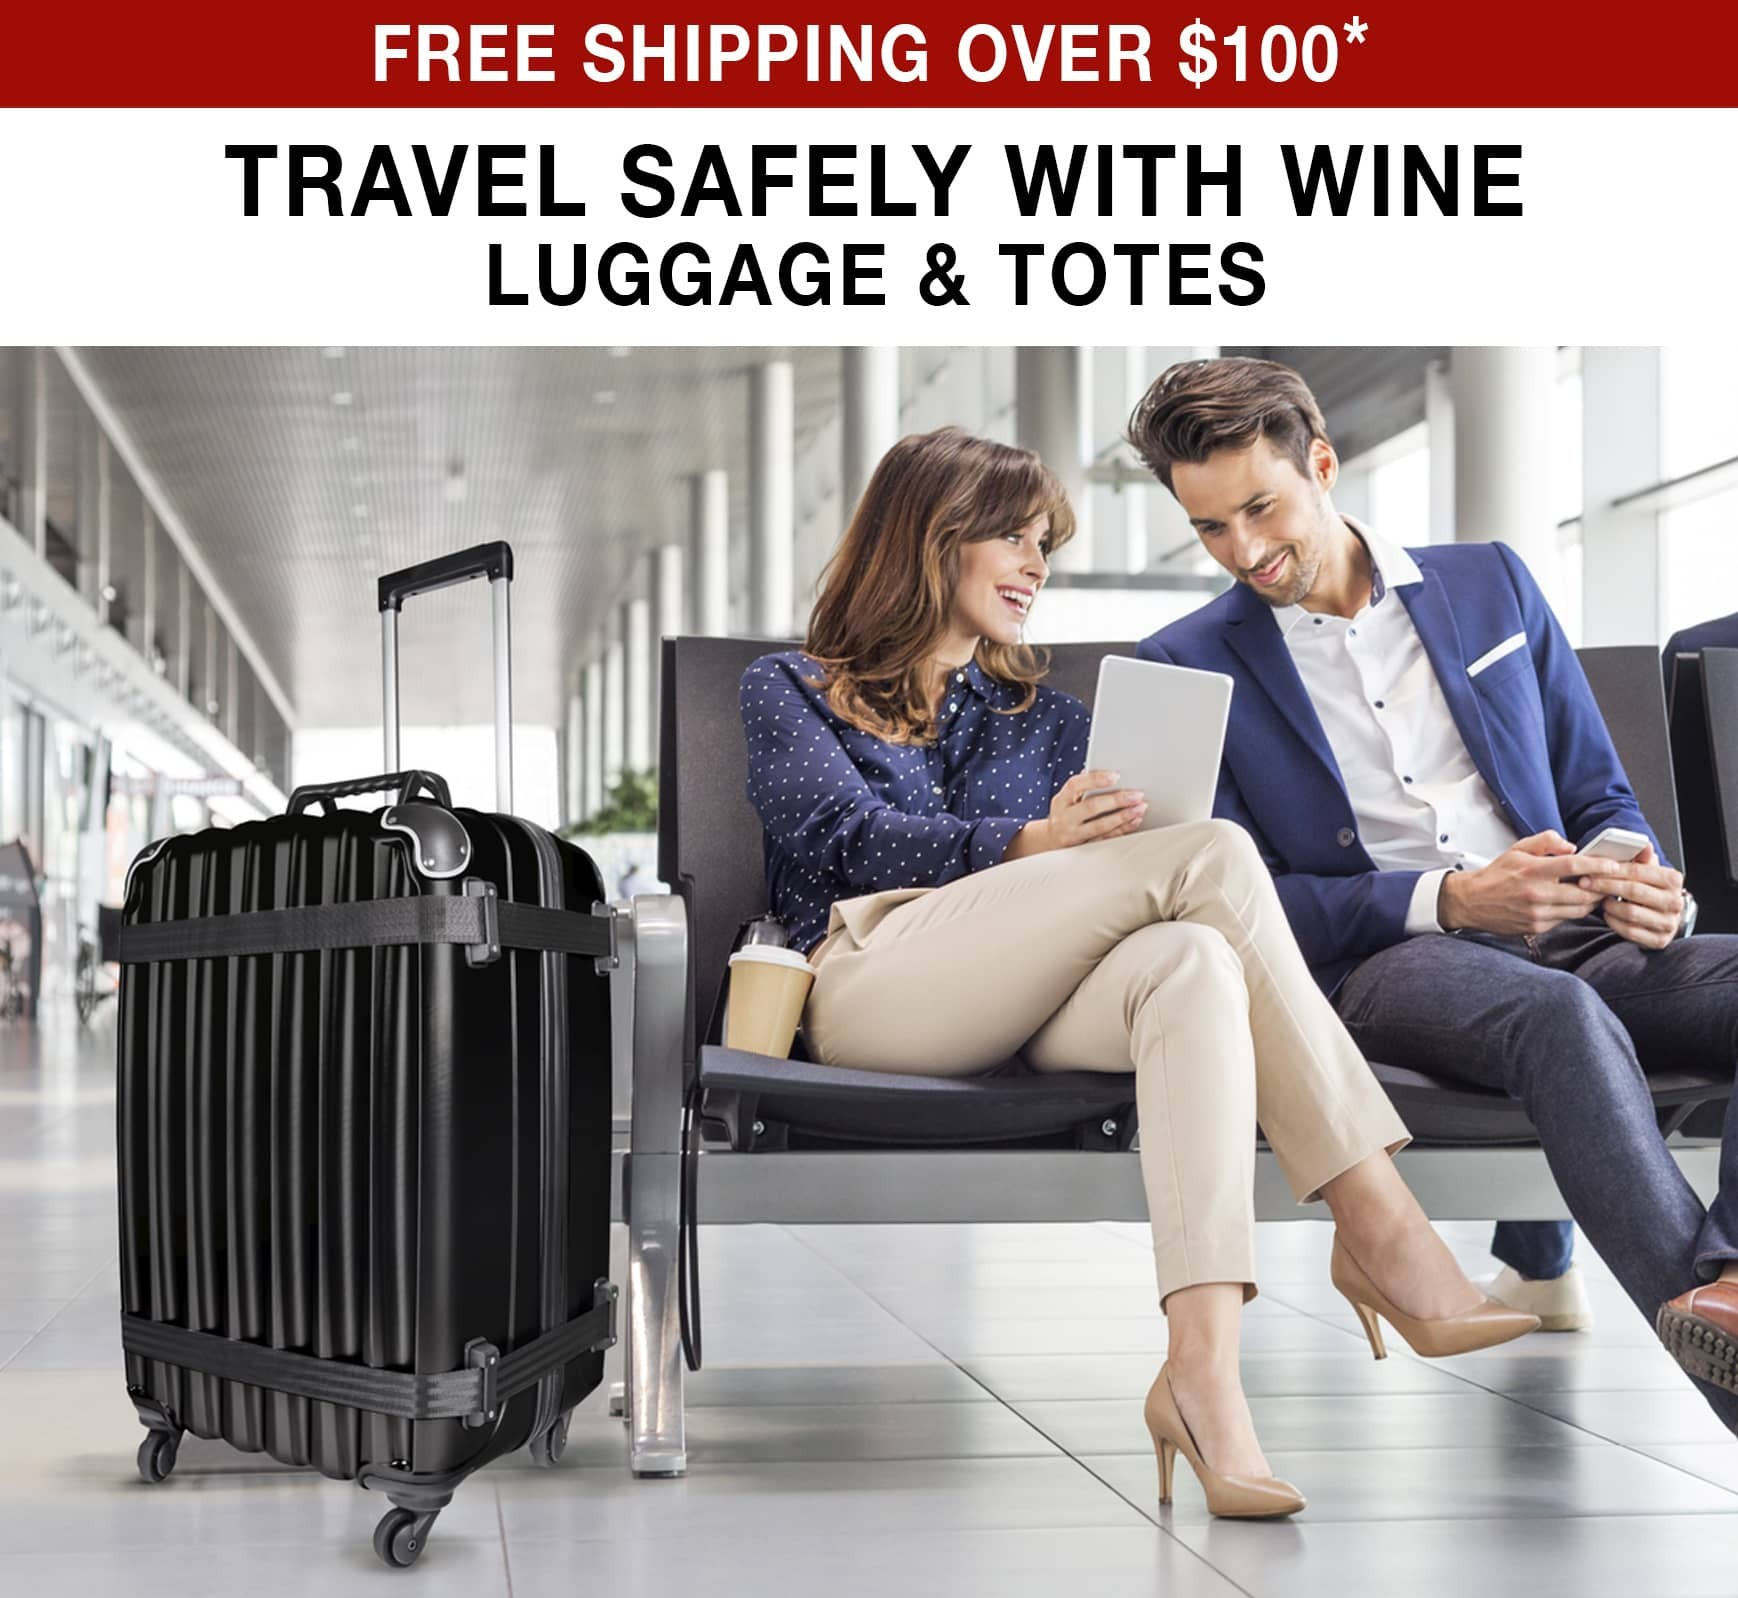 Travel Safely With Wine: Luggage & Totes